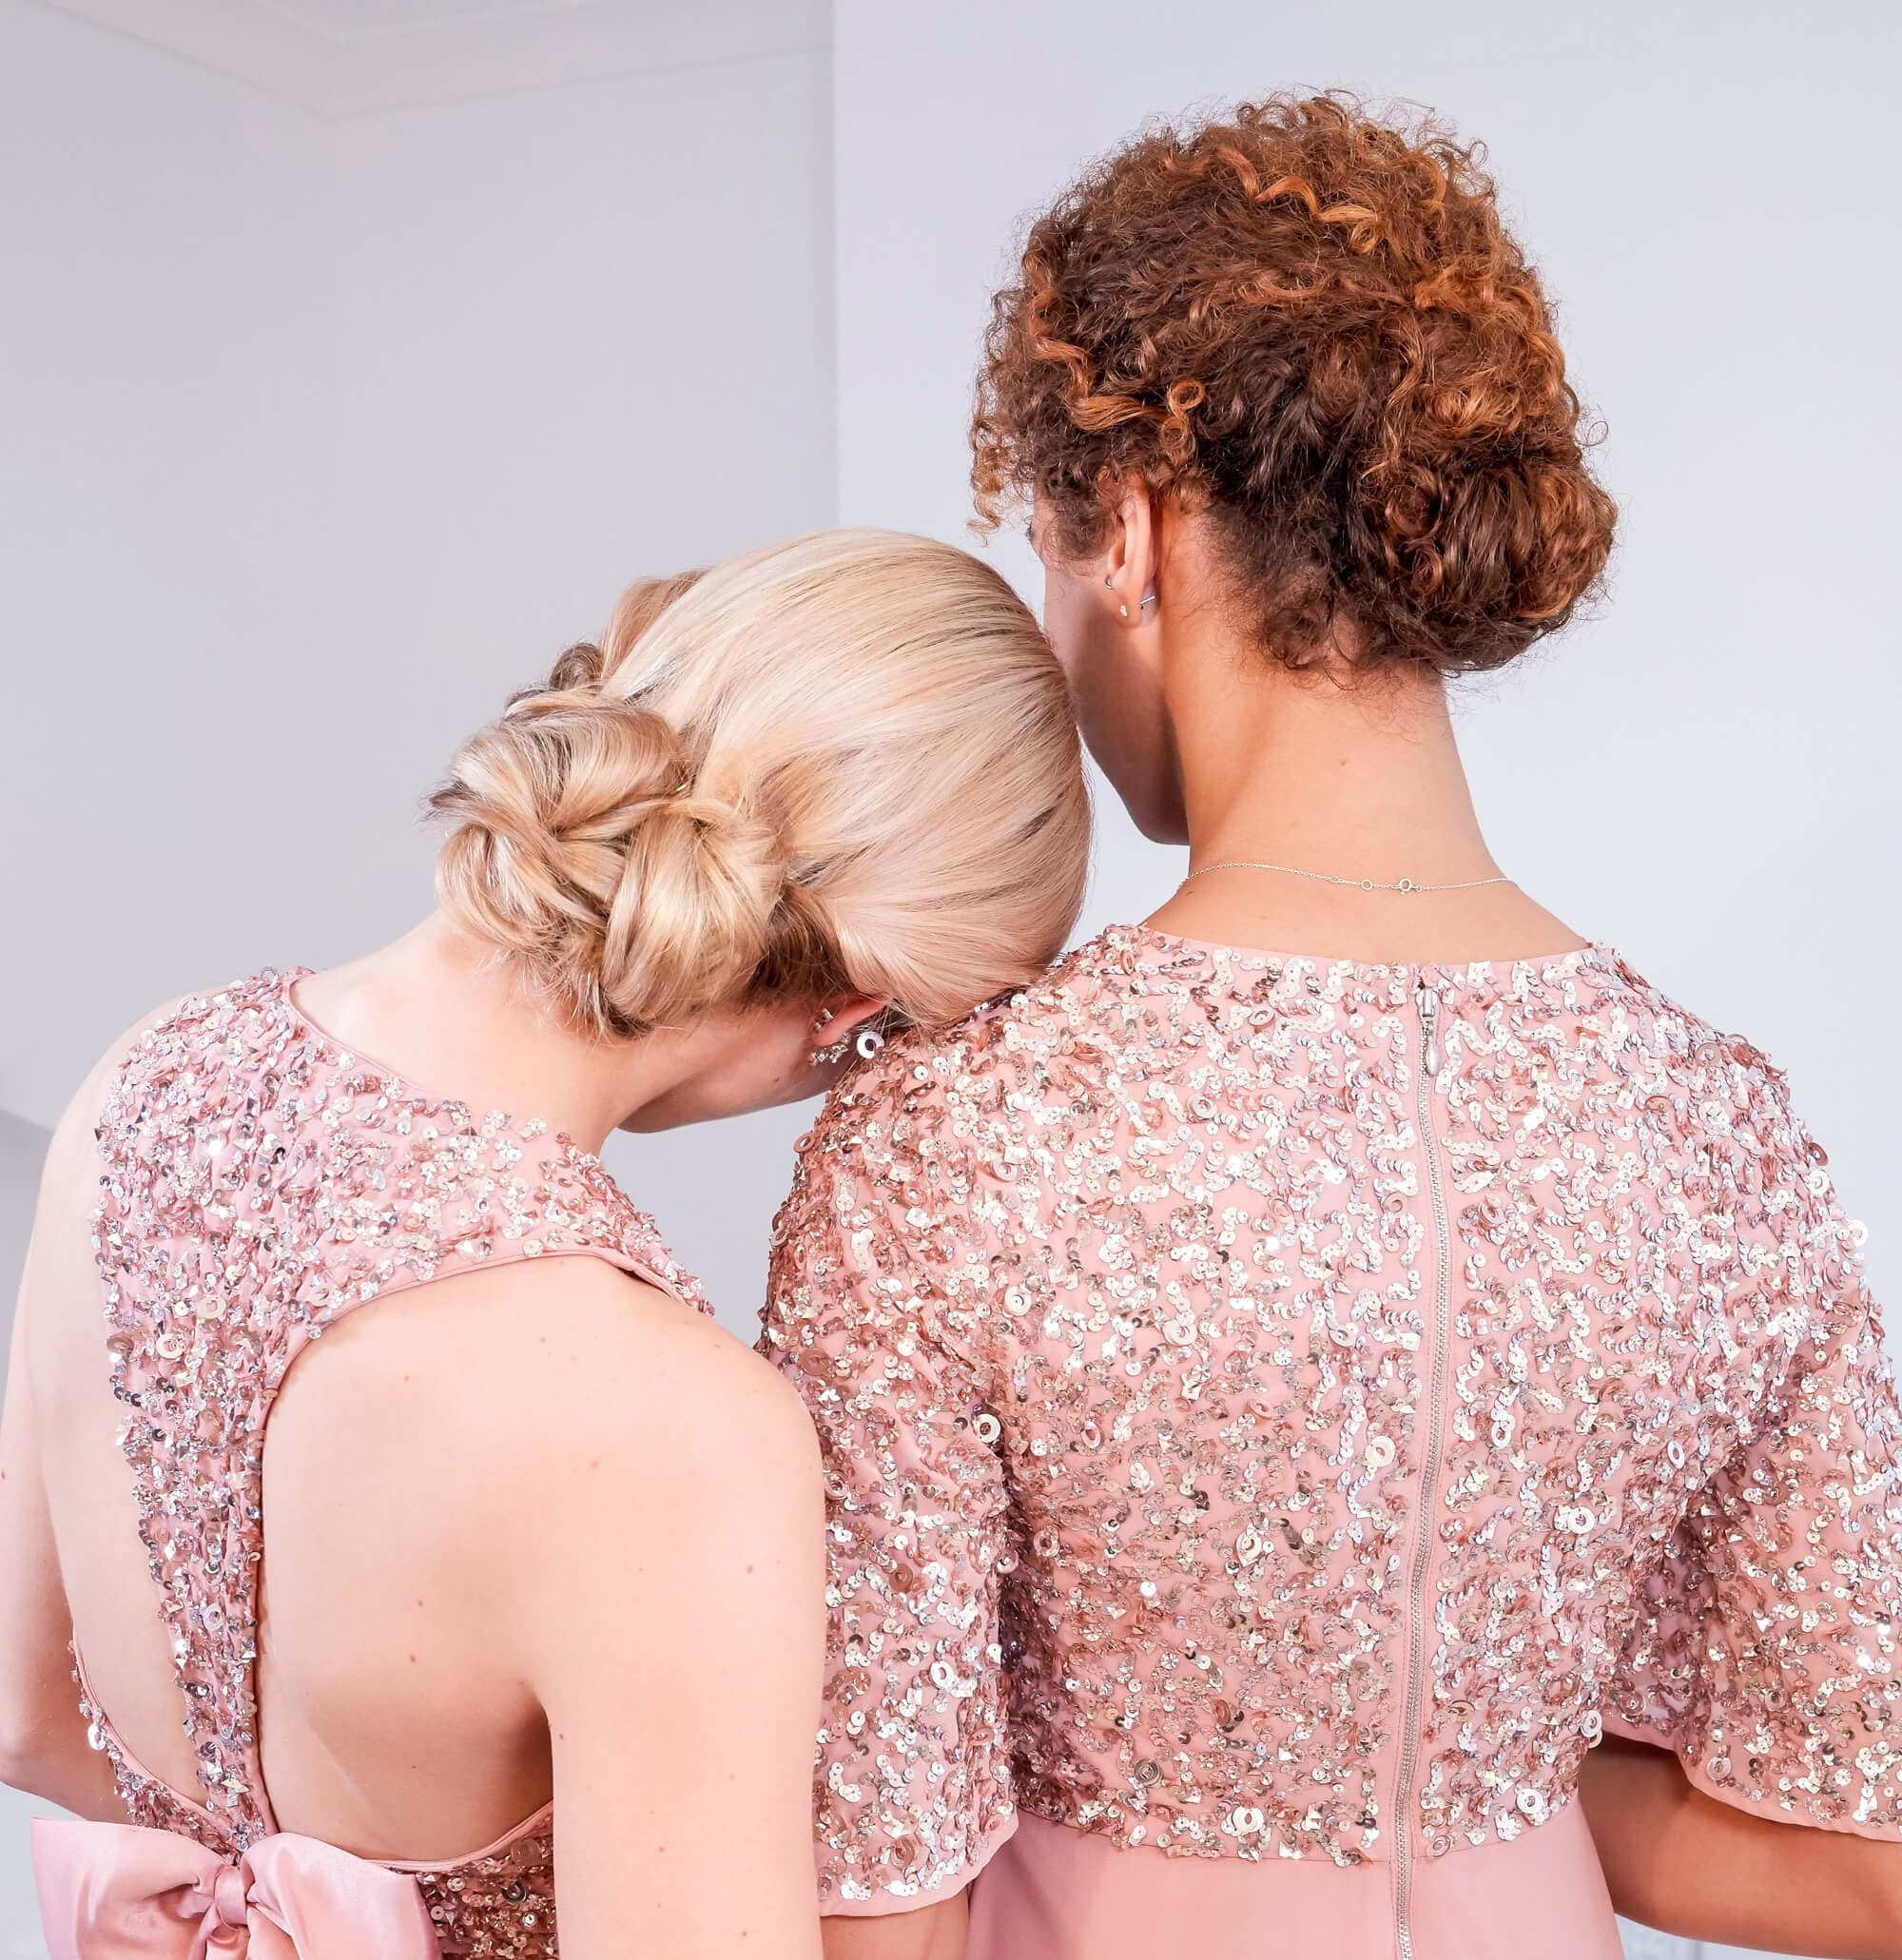 Easy natural hairstyles: Close up shot of two models with low braided buns, wearing pink formal dresses and posing for an editorial shoot.